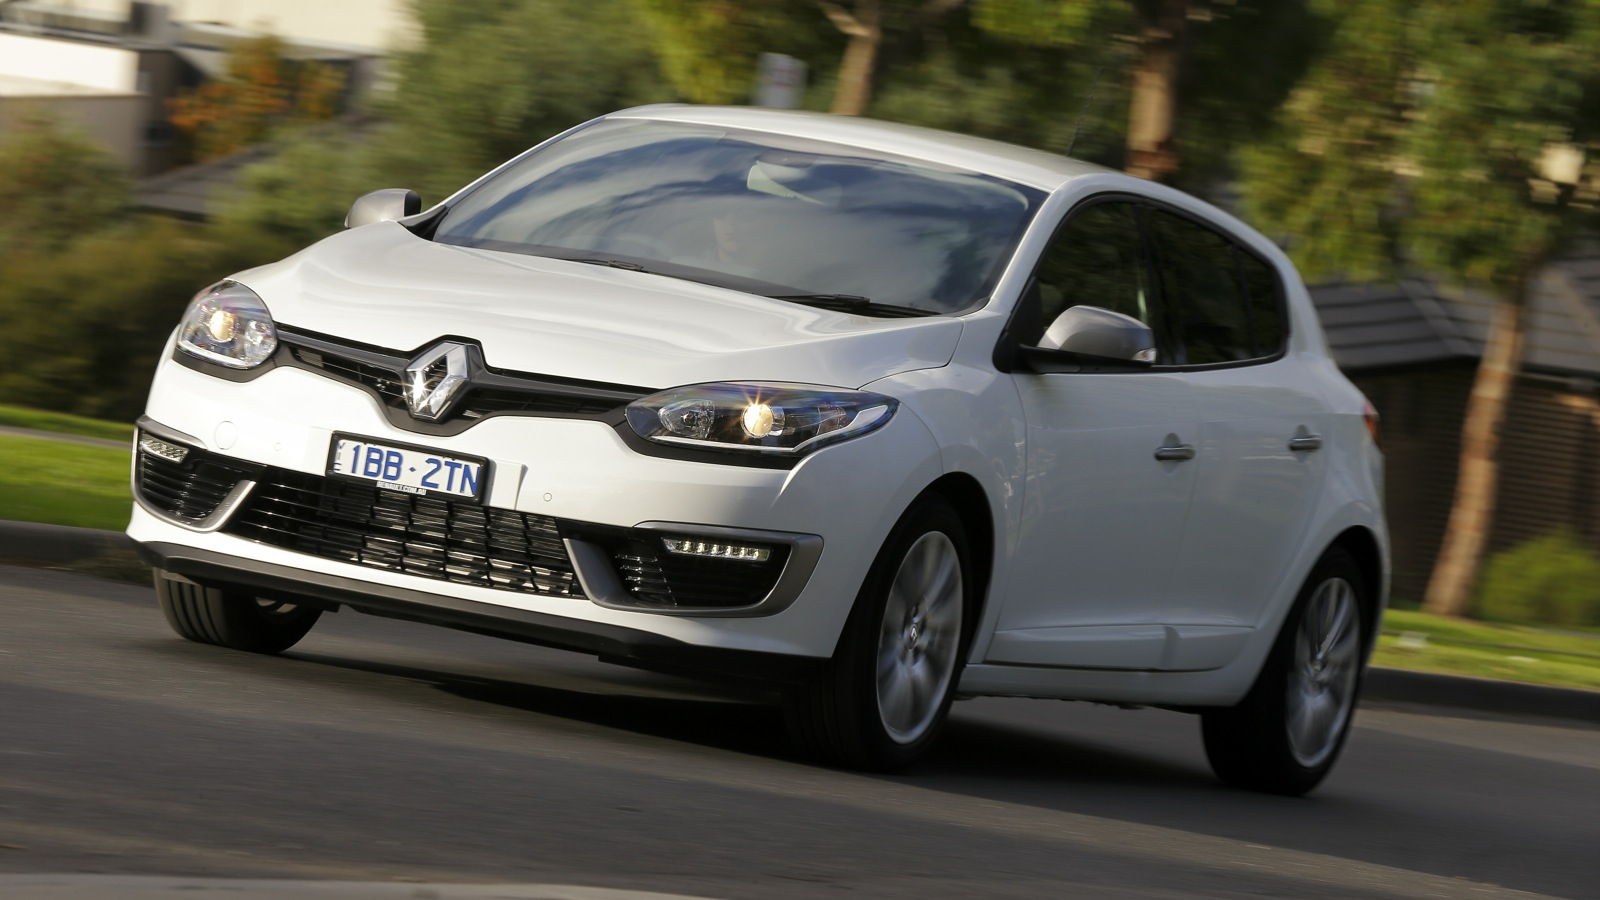 2014 Renault Megane Pricing And Specifications Photos